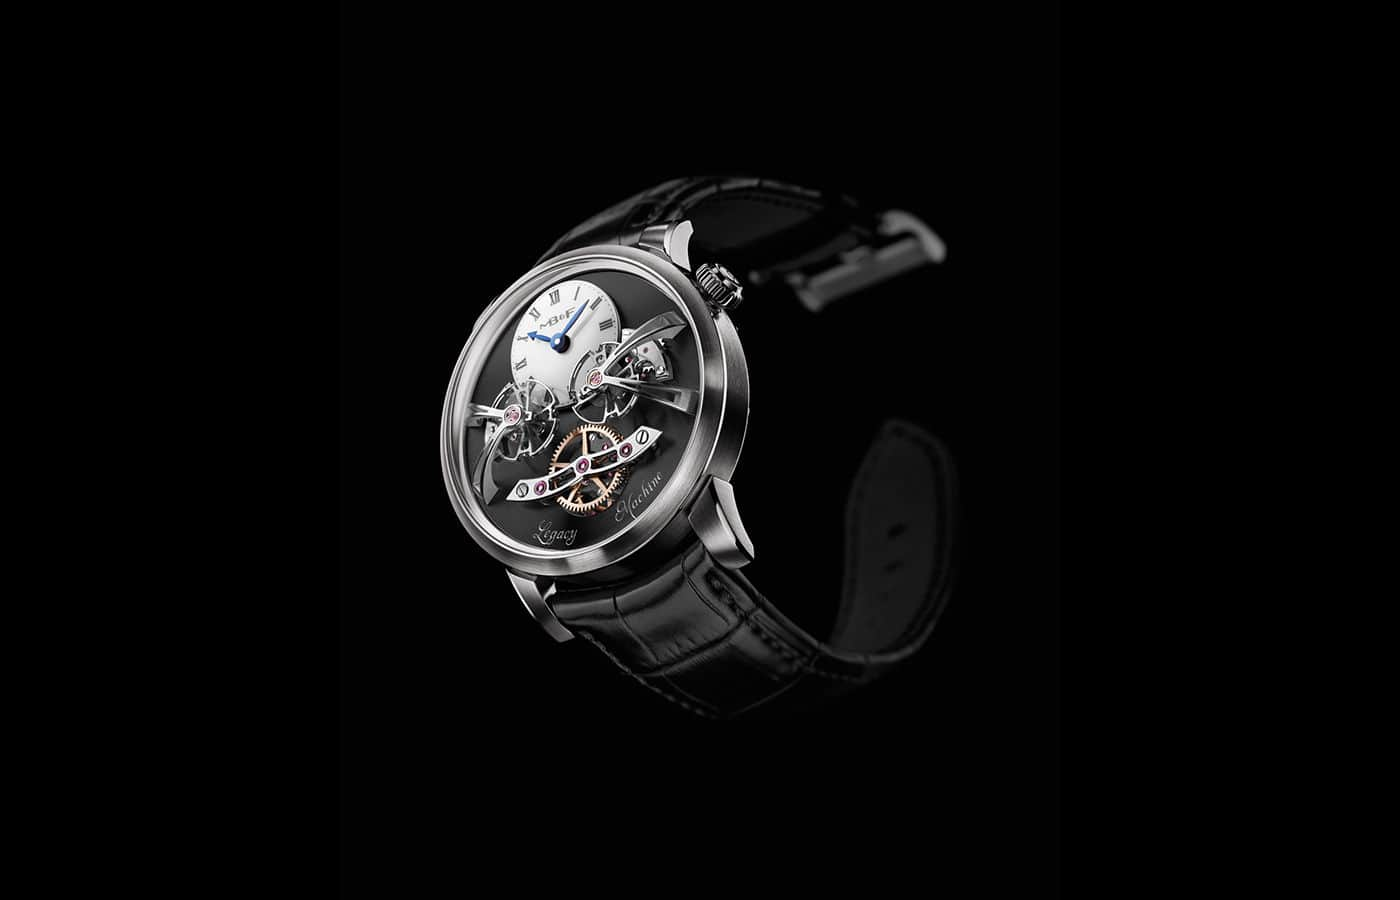 MB&F LM2 white gold